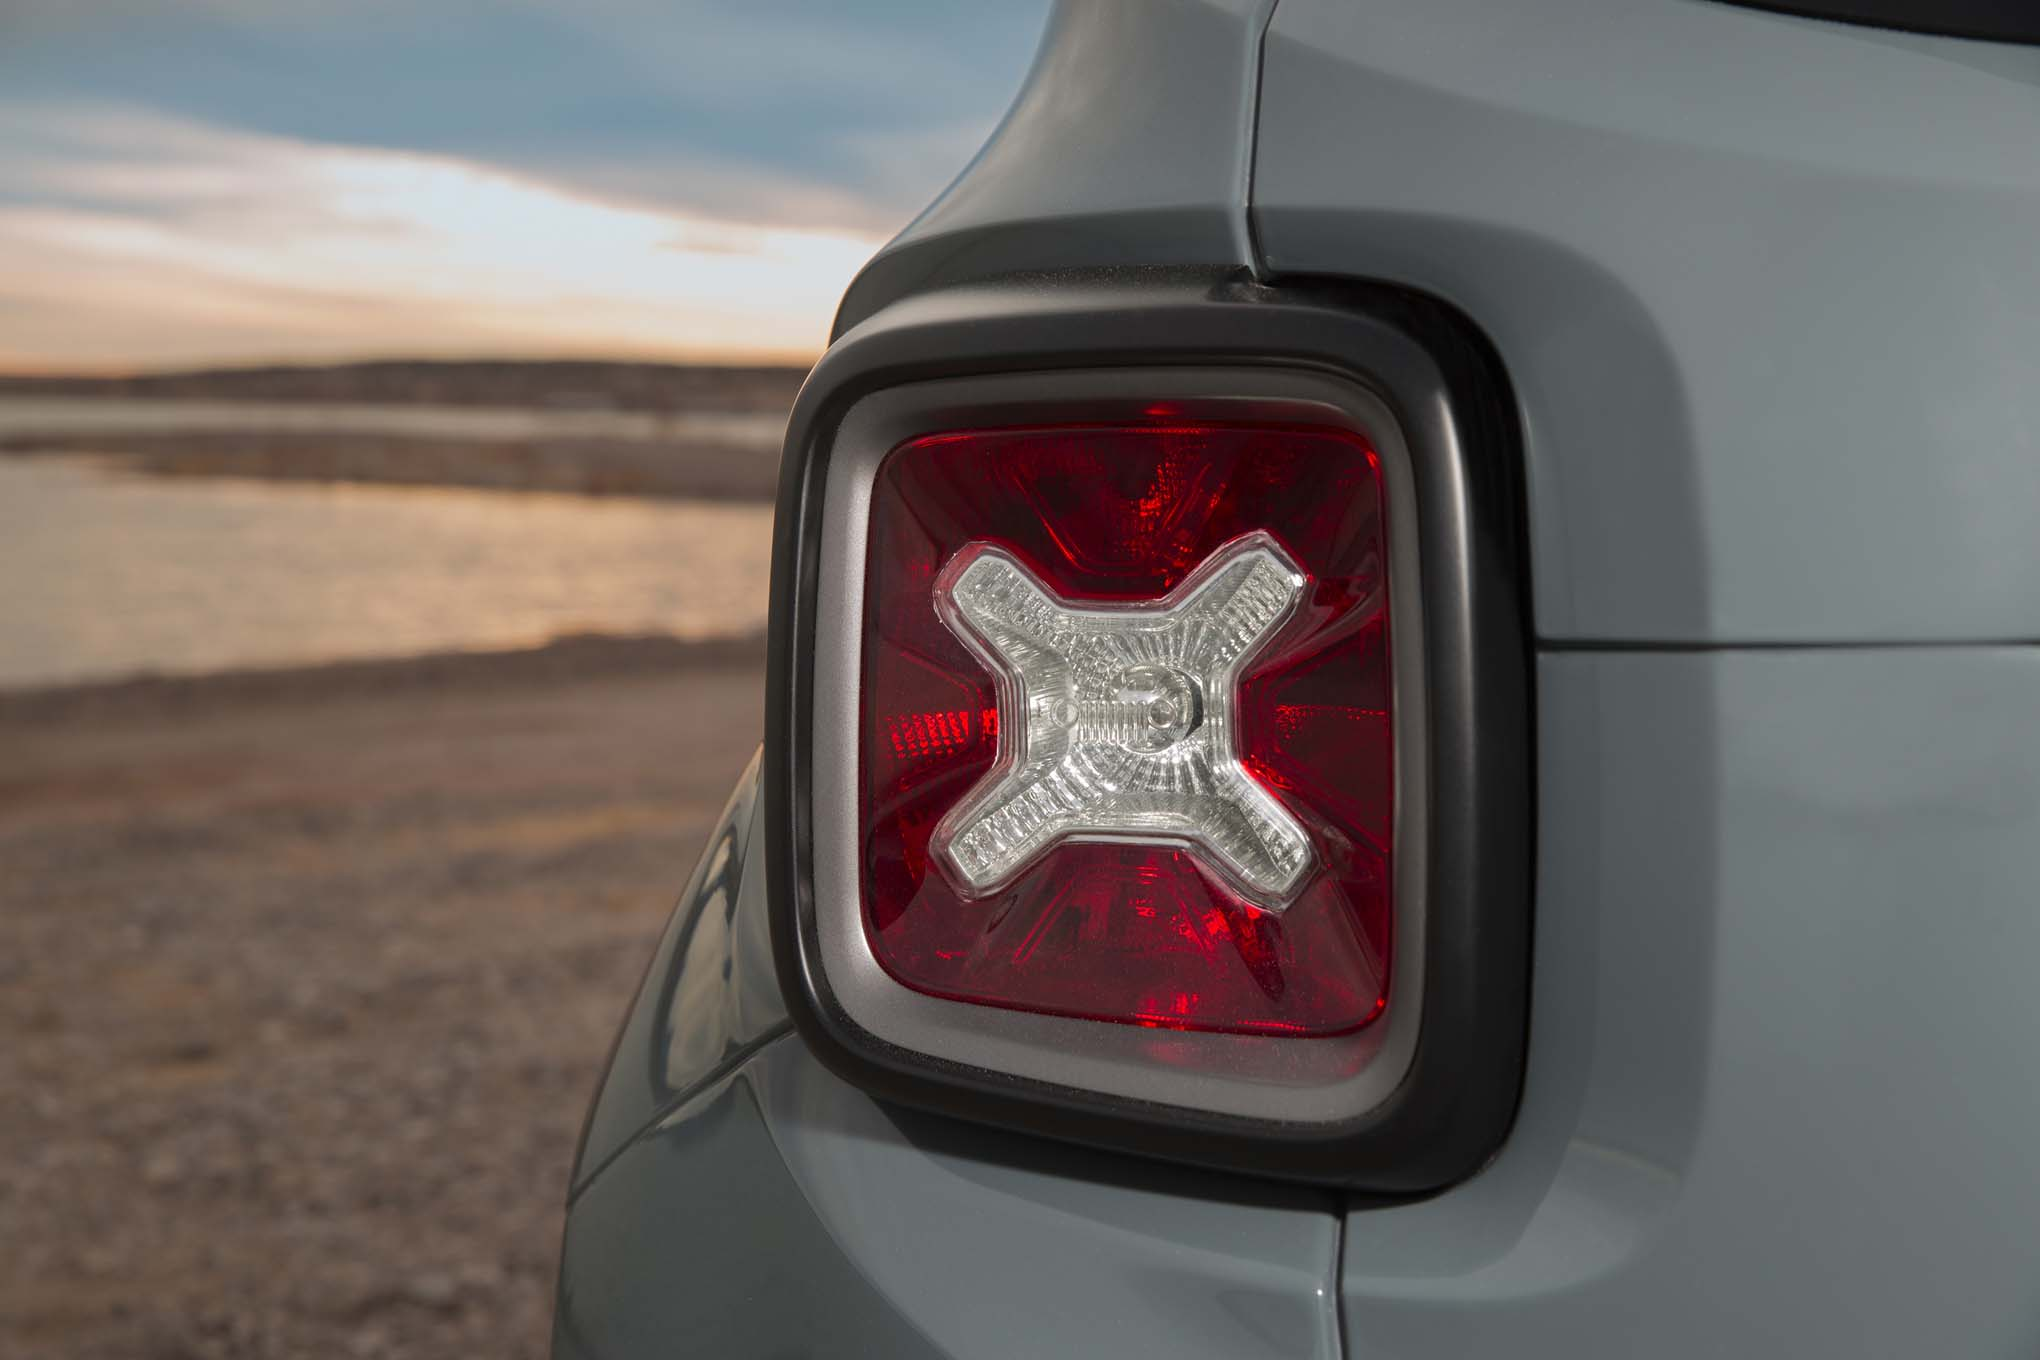 2015 Jeep Renegade Trailhawk taillight